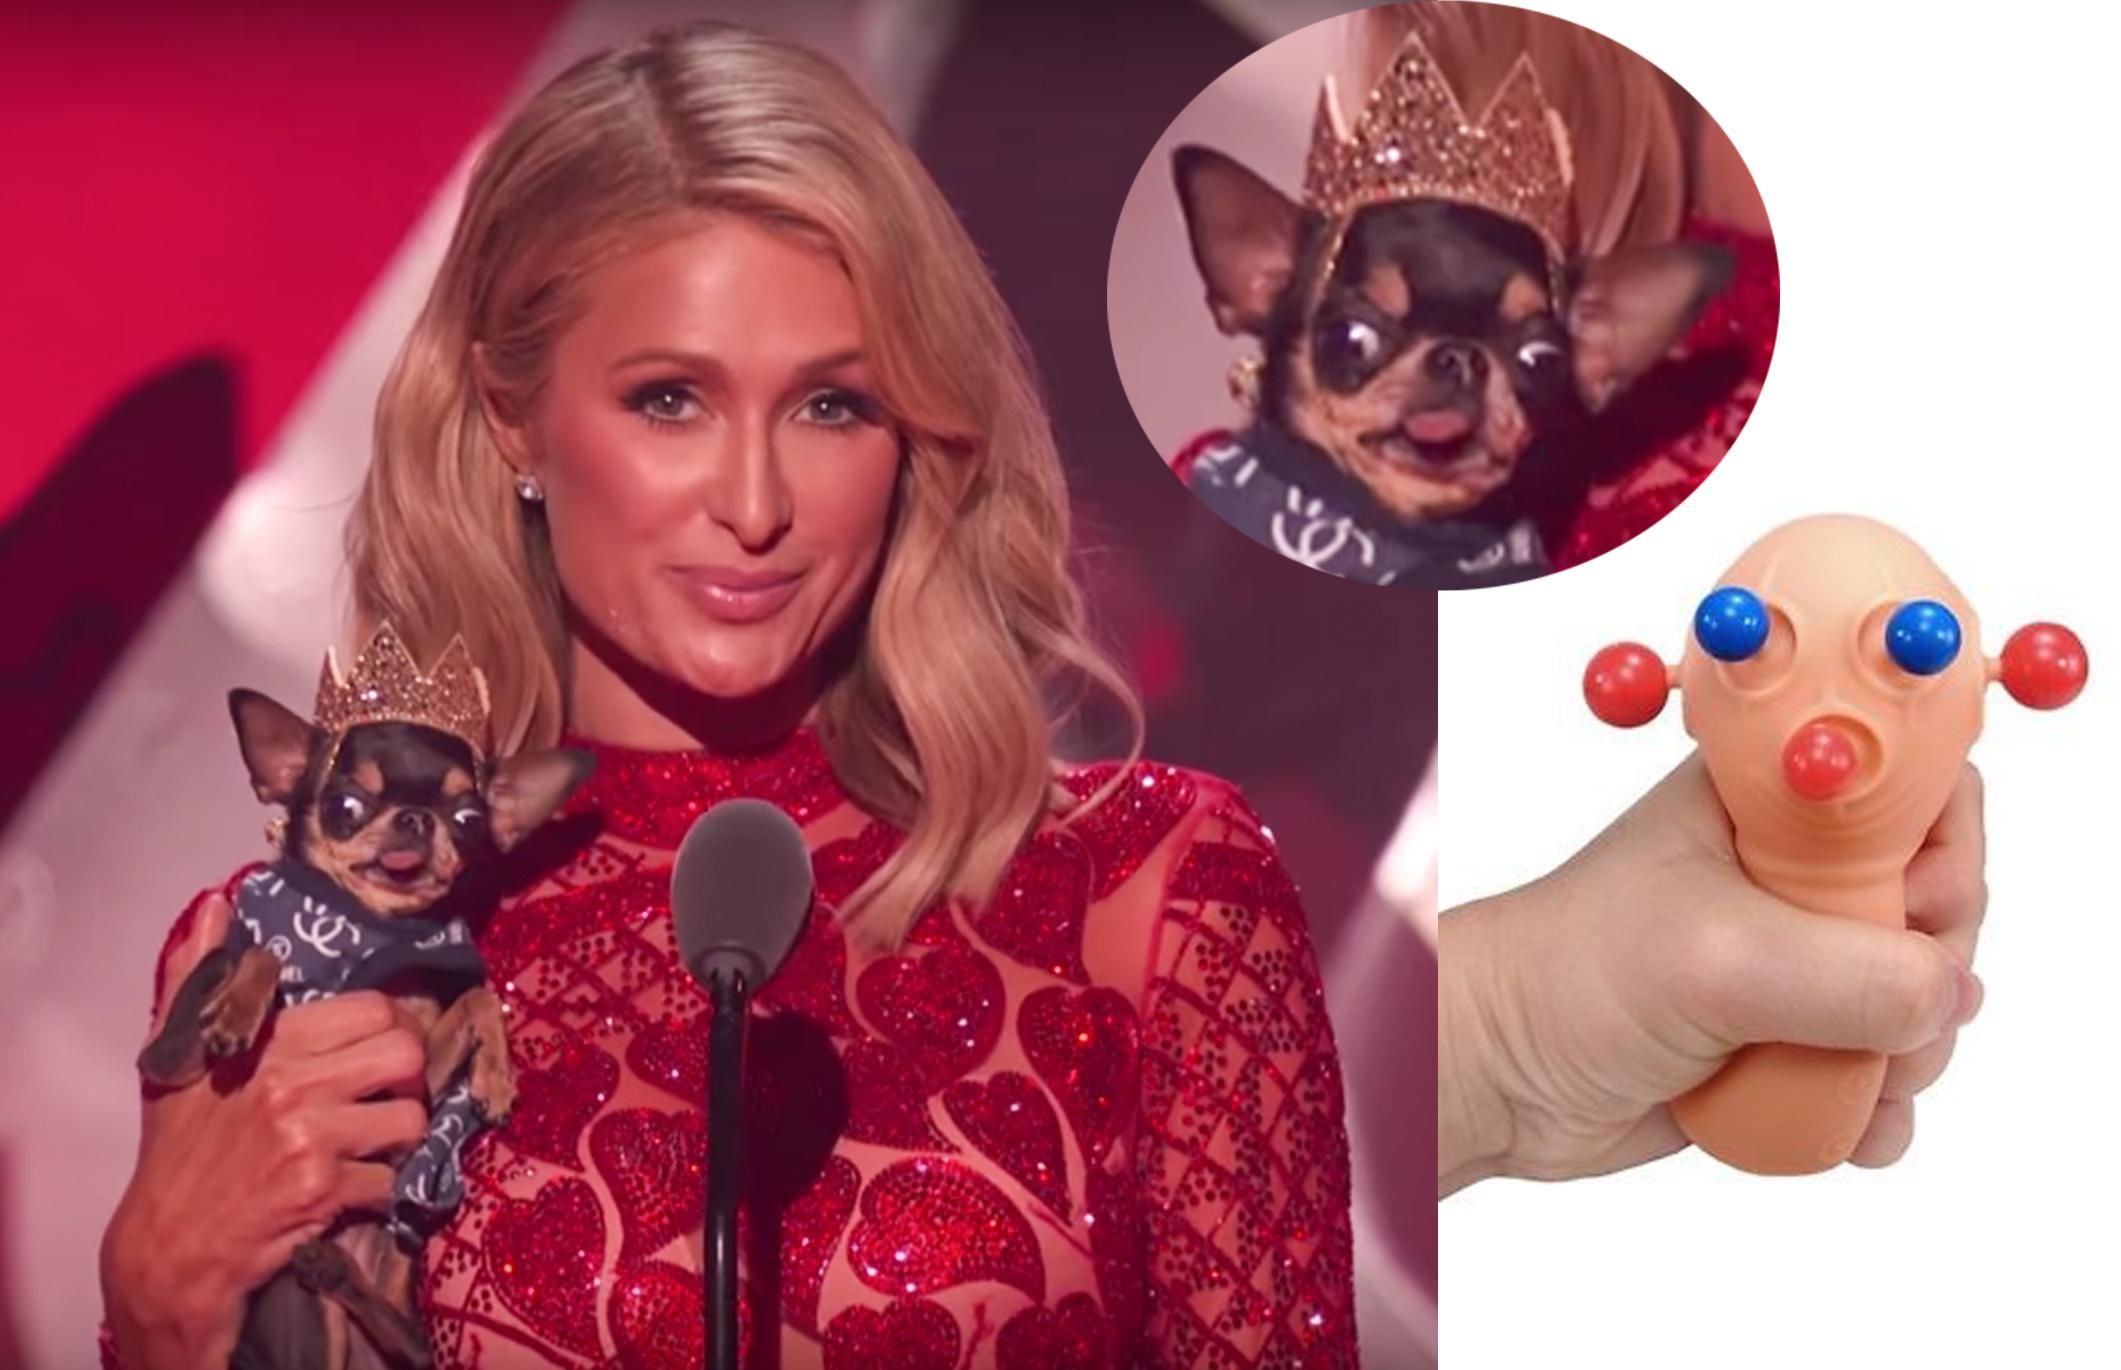 In case you missed it last night, here is Paris Hilton squeezing her dog